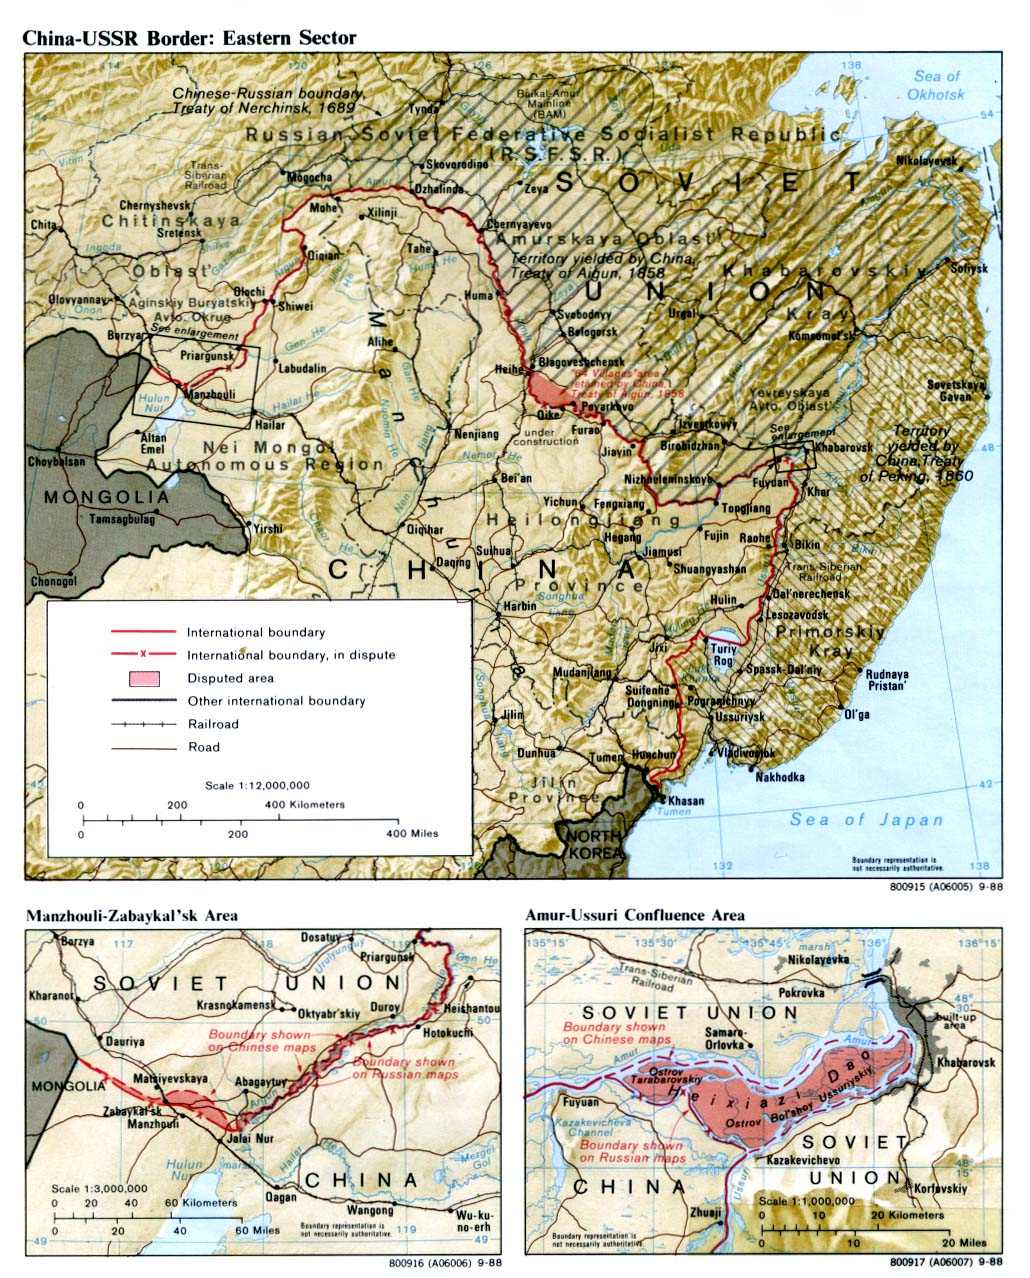 Sino-Soviet border conflict - Wikipedia on map of russia 1900, map of only russia, map of mineral deposits in china, map of current civil wars in the world, map of current in kaliningrad russia, world map russia, map of russia 1918, map of eastern russia, map of sudan in africa, map with land regions of russia,